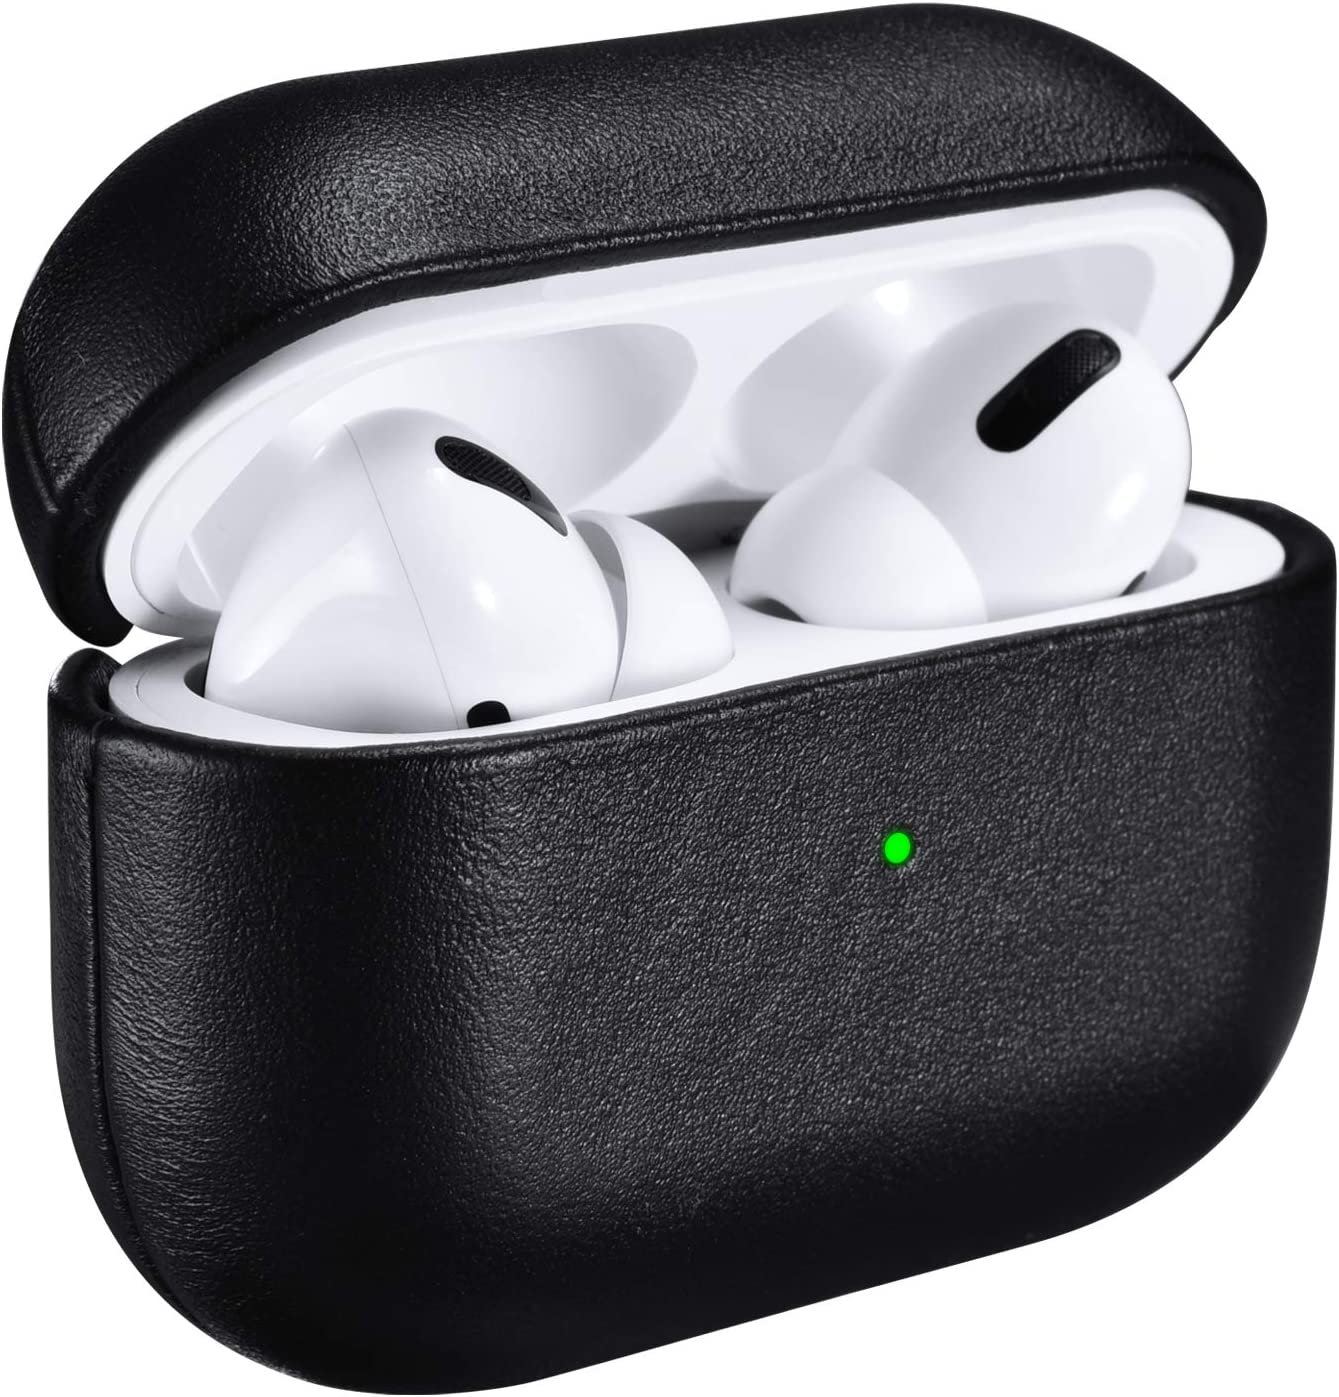 ICARERSPACE Compatible with AirPods Pro Case, Handmade Genuine Leather Protective Cover Case for Apple AirPods Pro Charging Case [Front LED Visible] [Support Wireless Charging] - Black